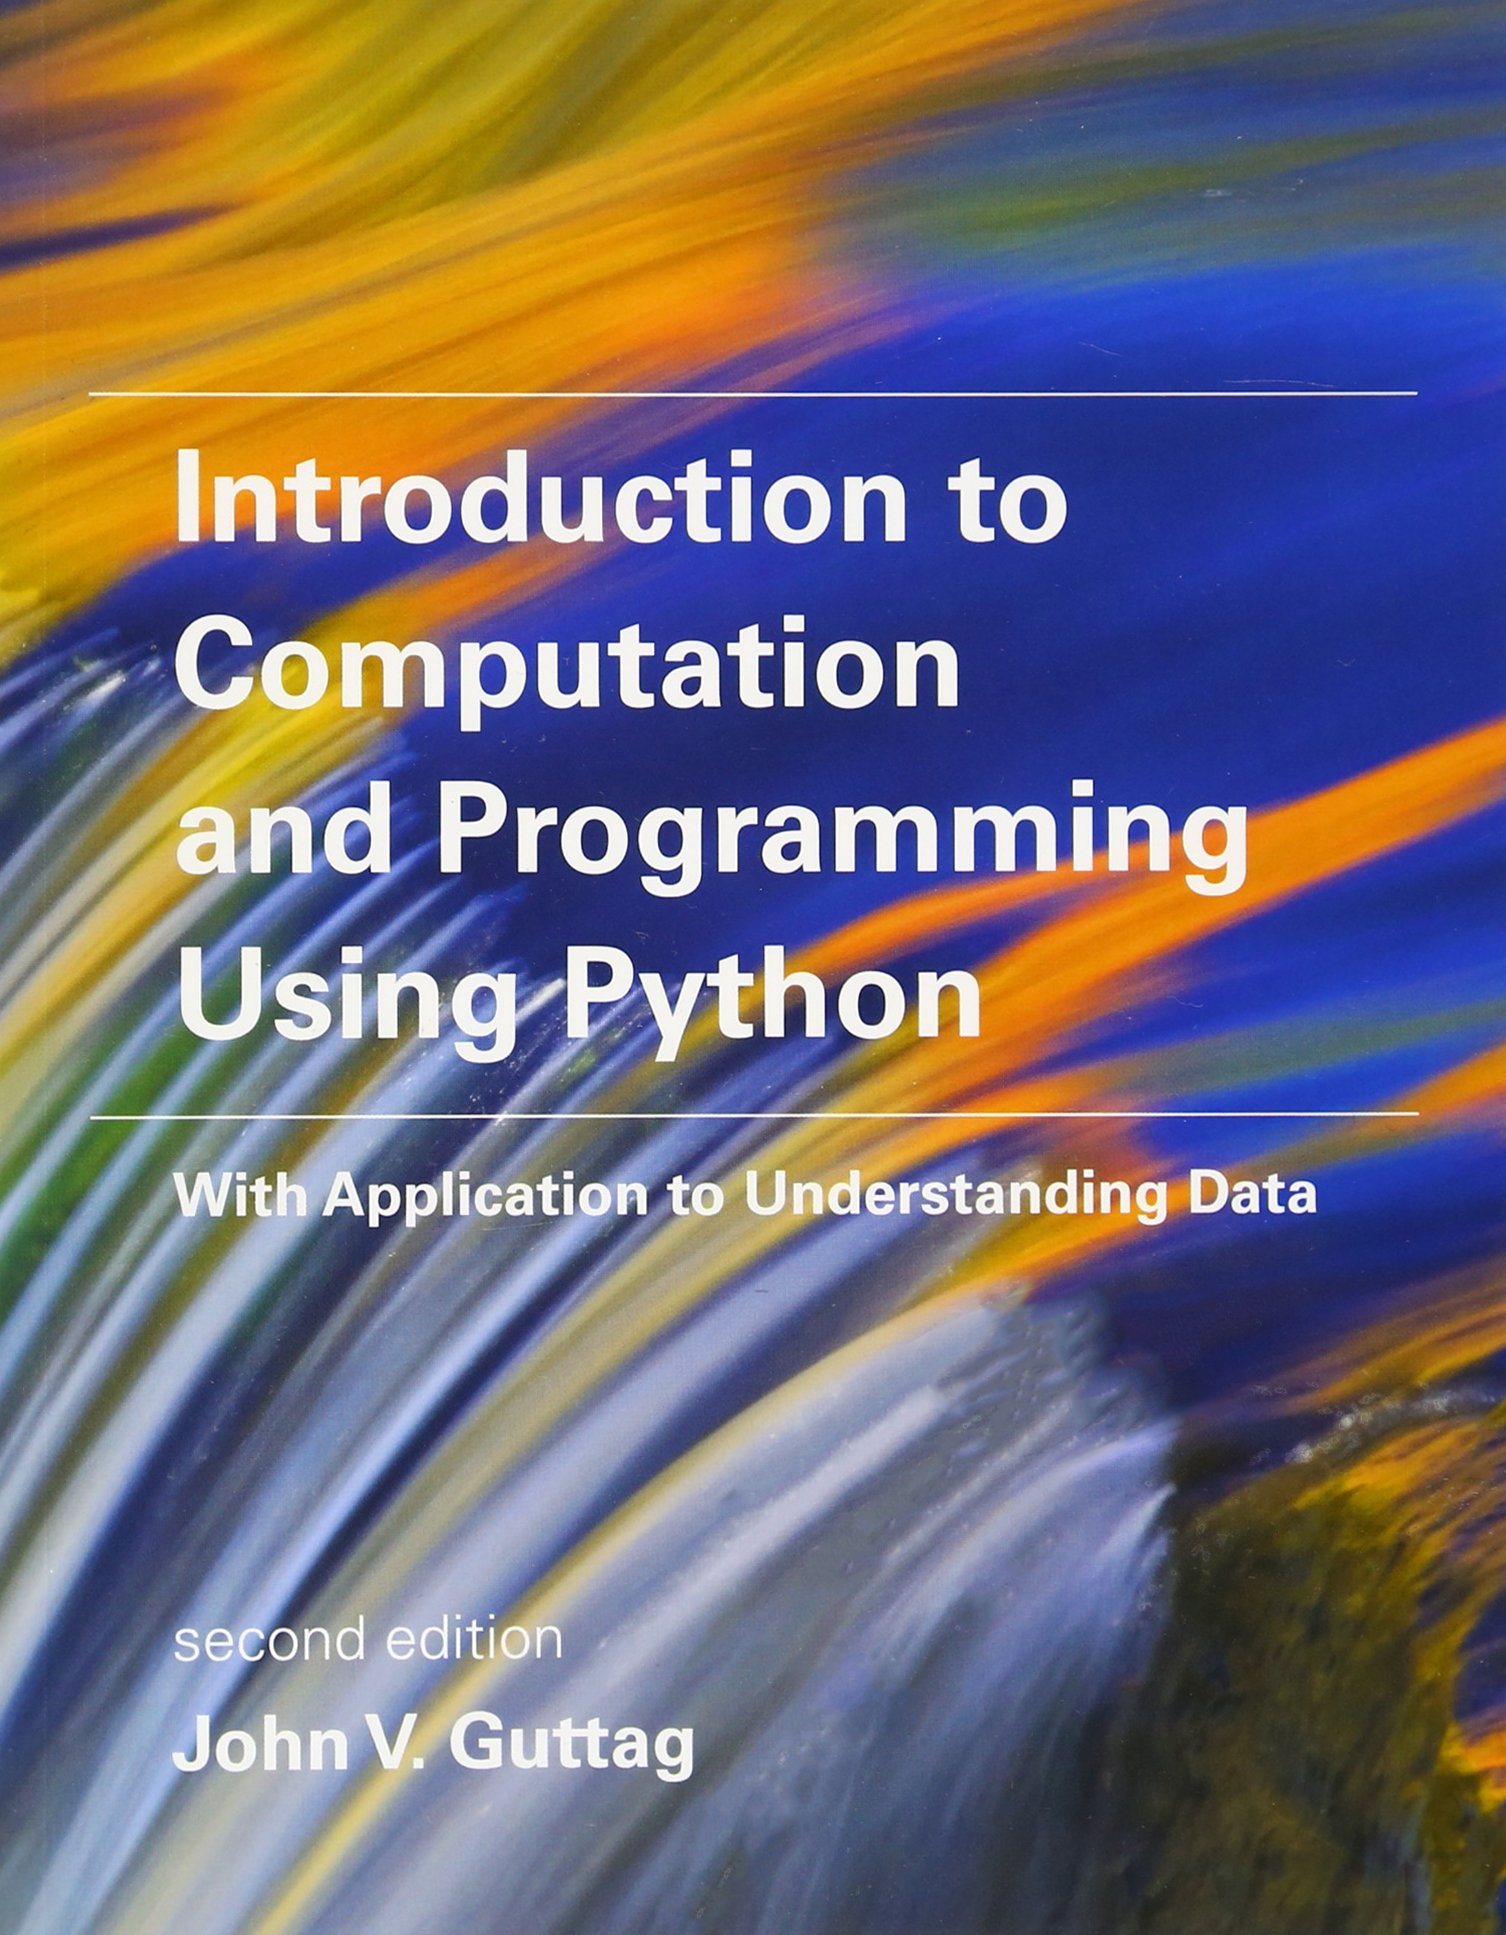 Introduction to Computation and Programming Using Python: With Application to Understanding Data (The MIT Press) by Mit Press